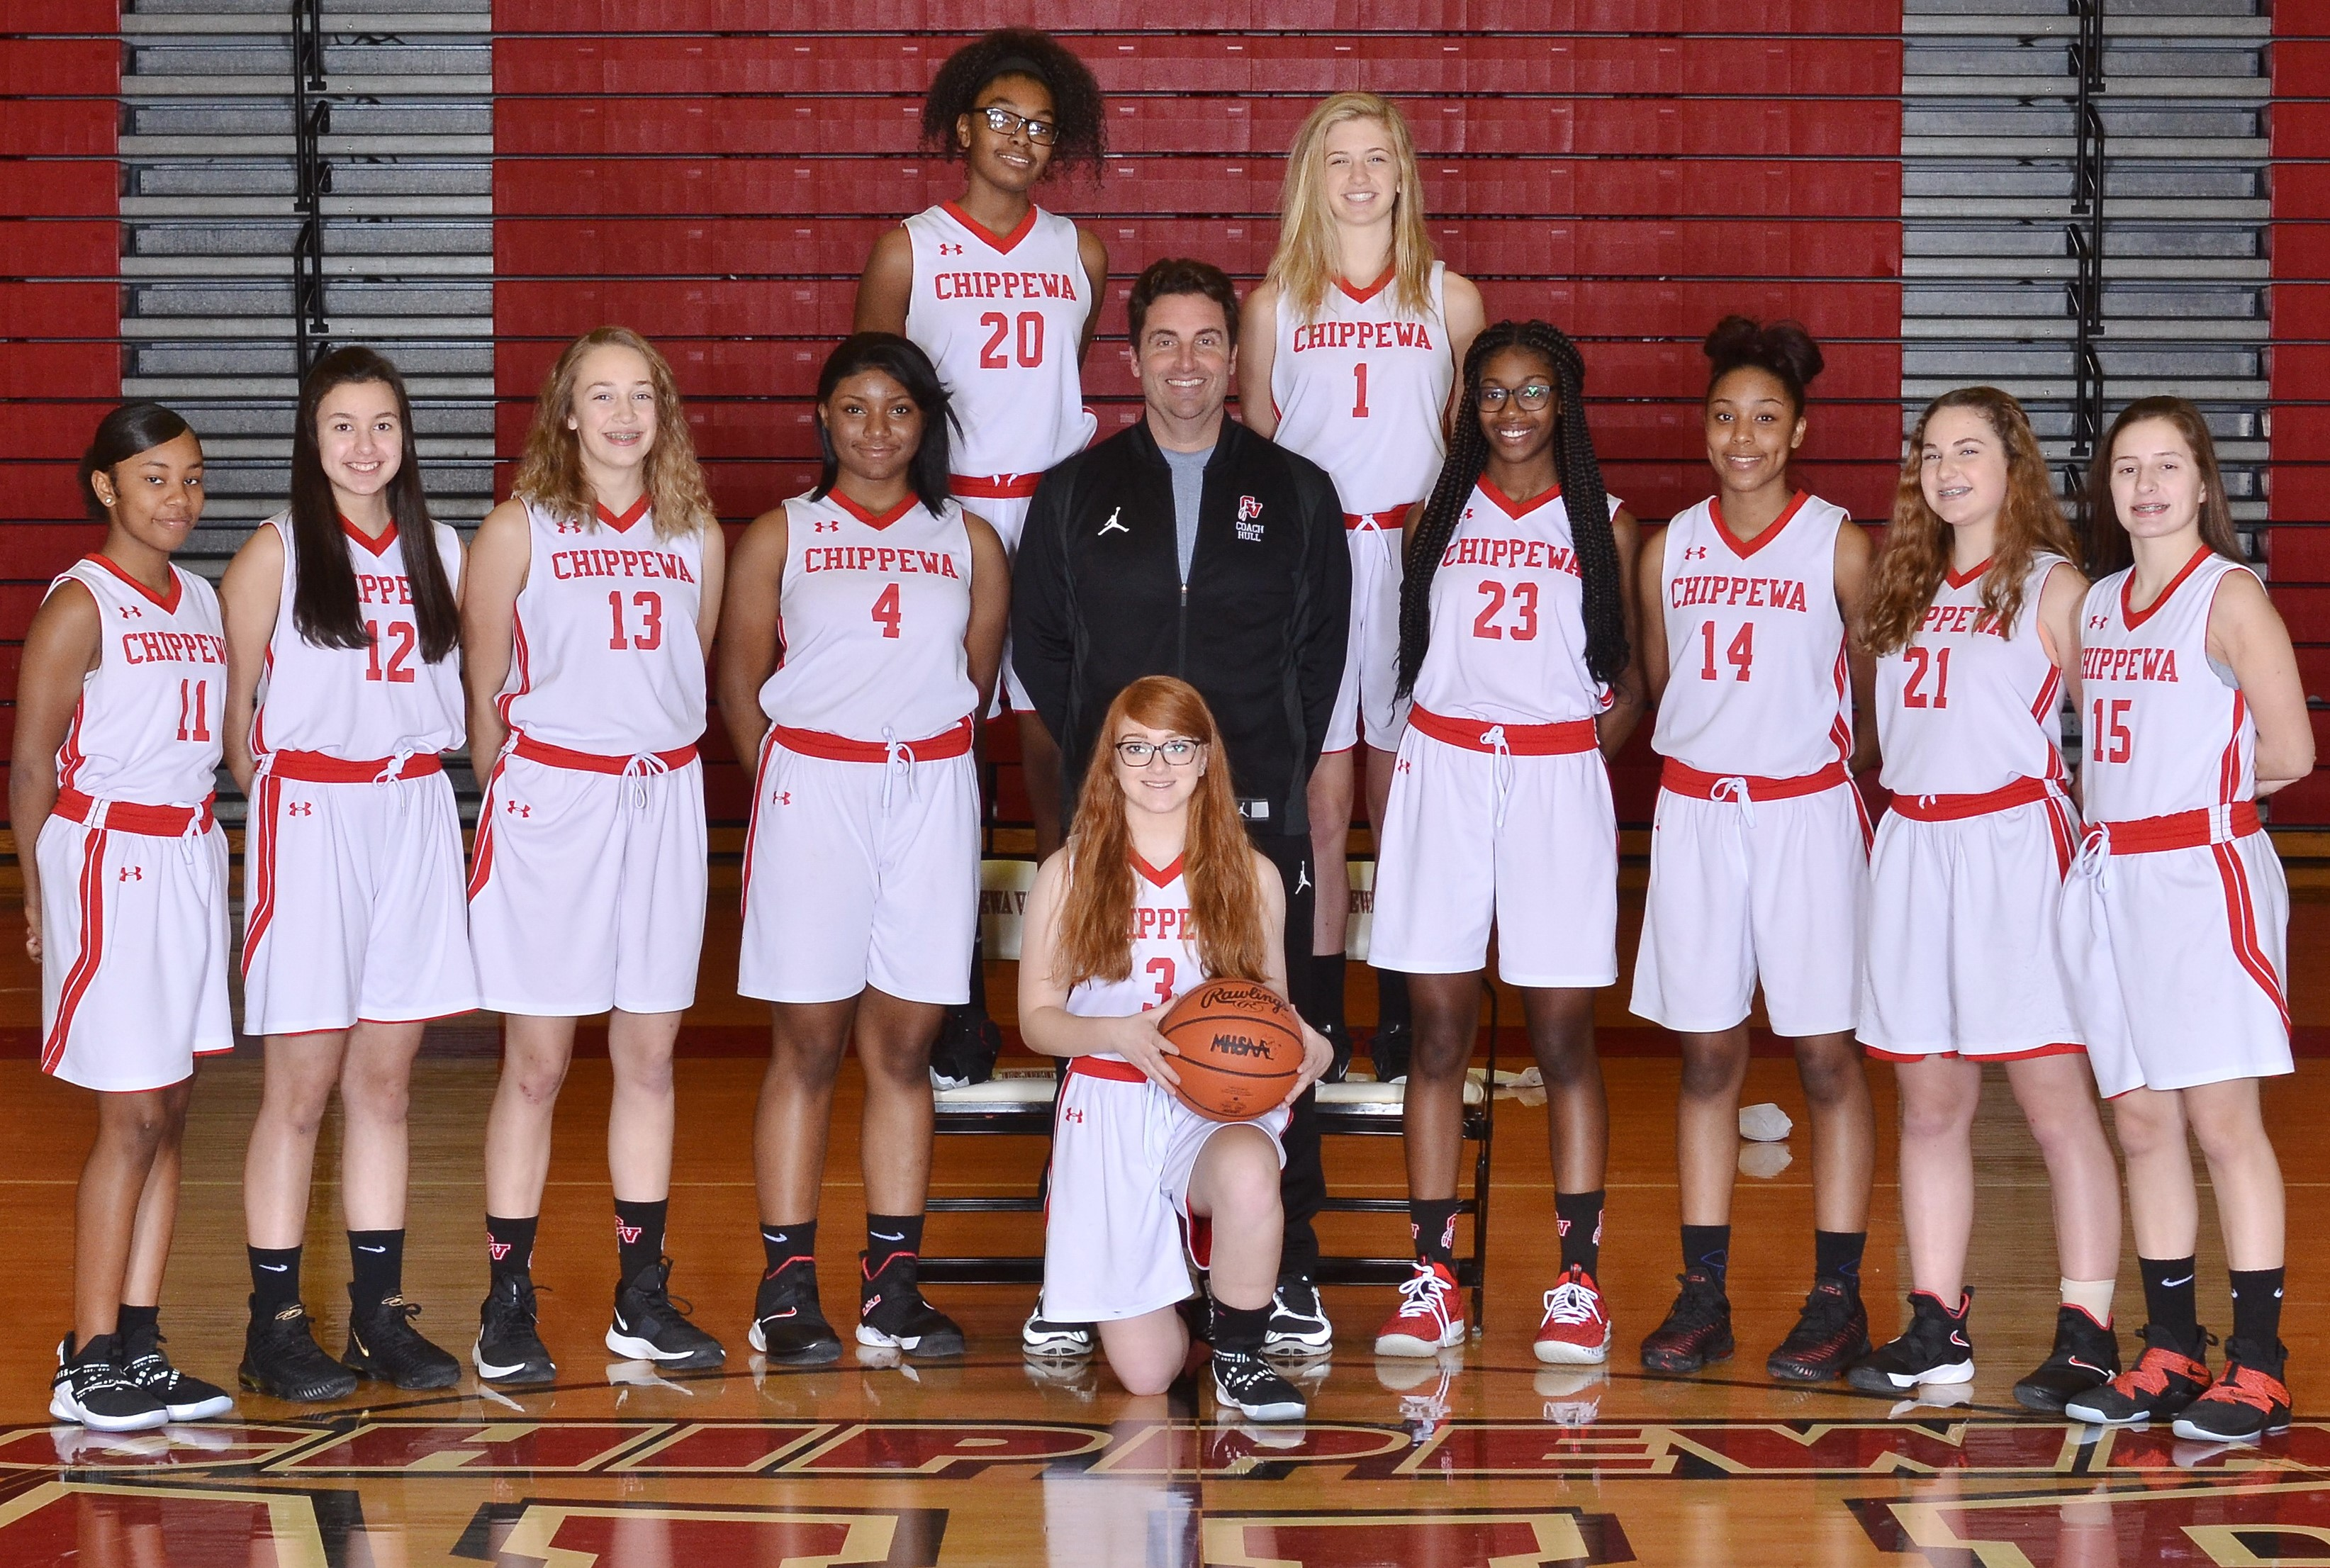 Freshman Girls Basketball Team Photo